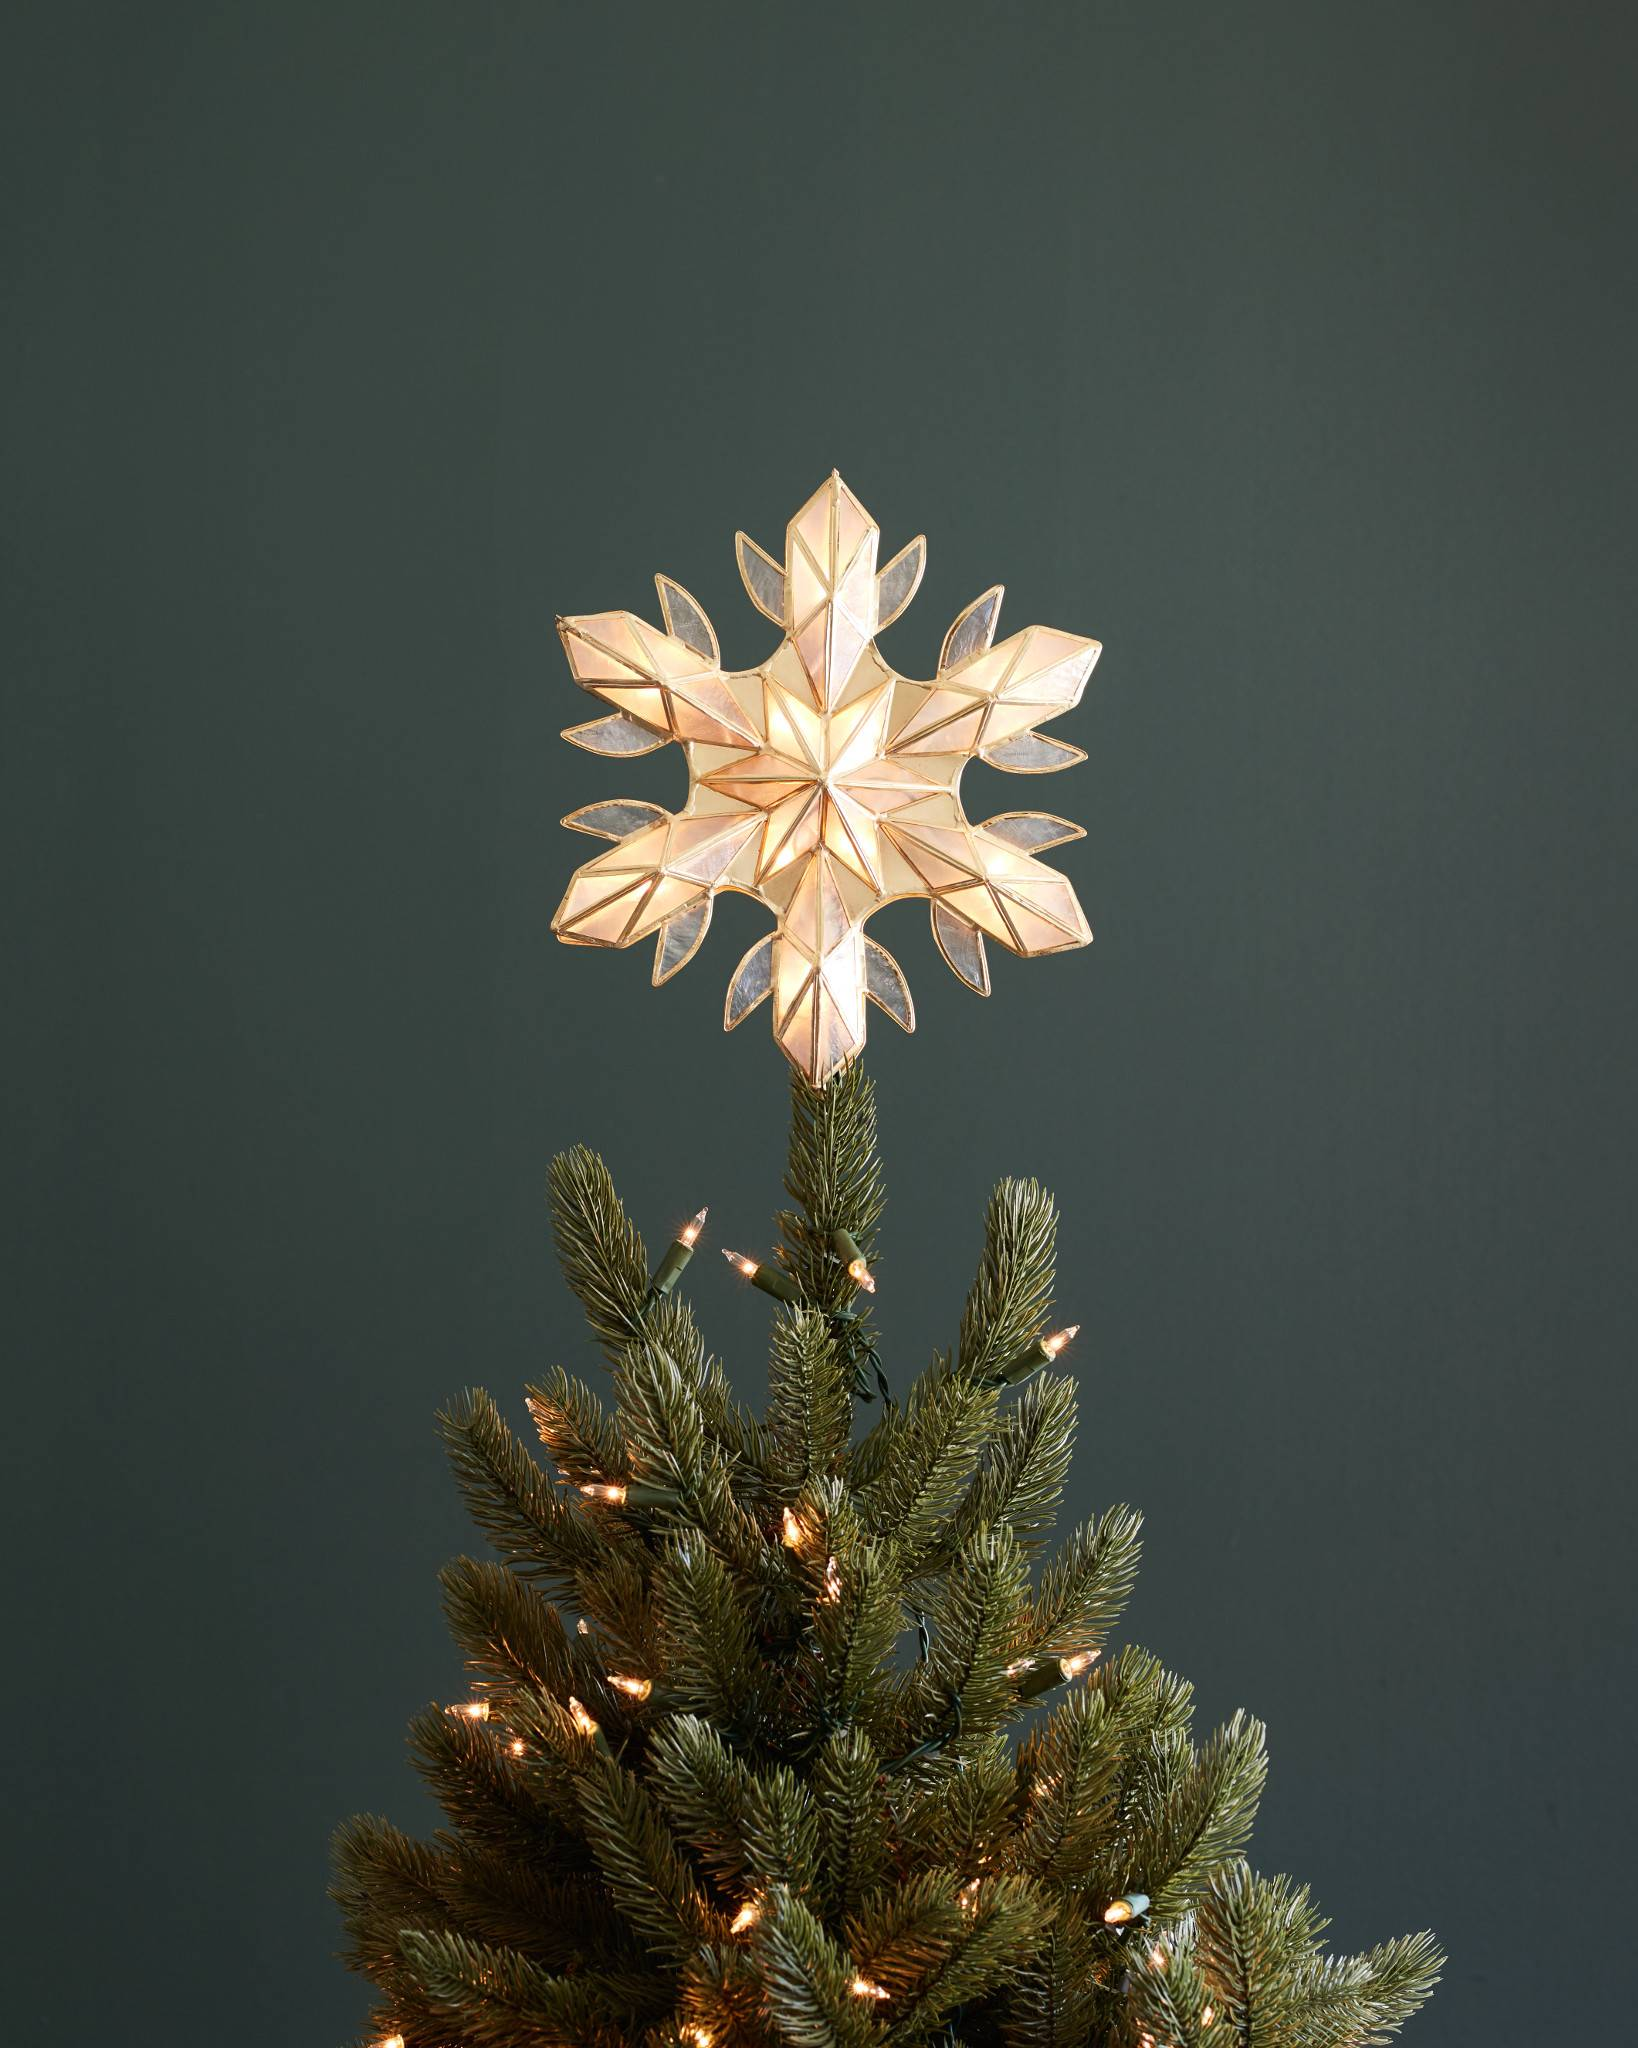 capiz snowflake lighted tree topper by balsam hill - Lighted Christmas Tree Toppers